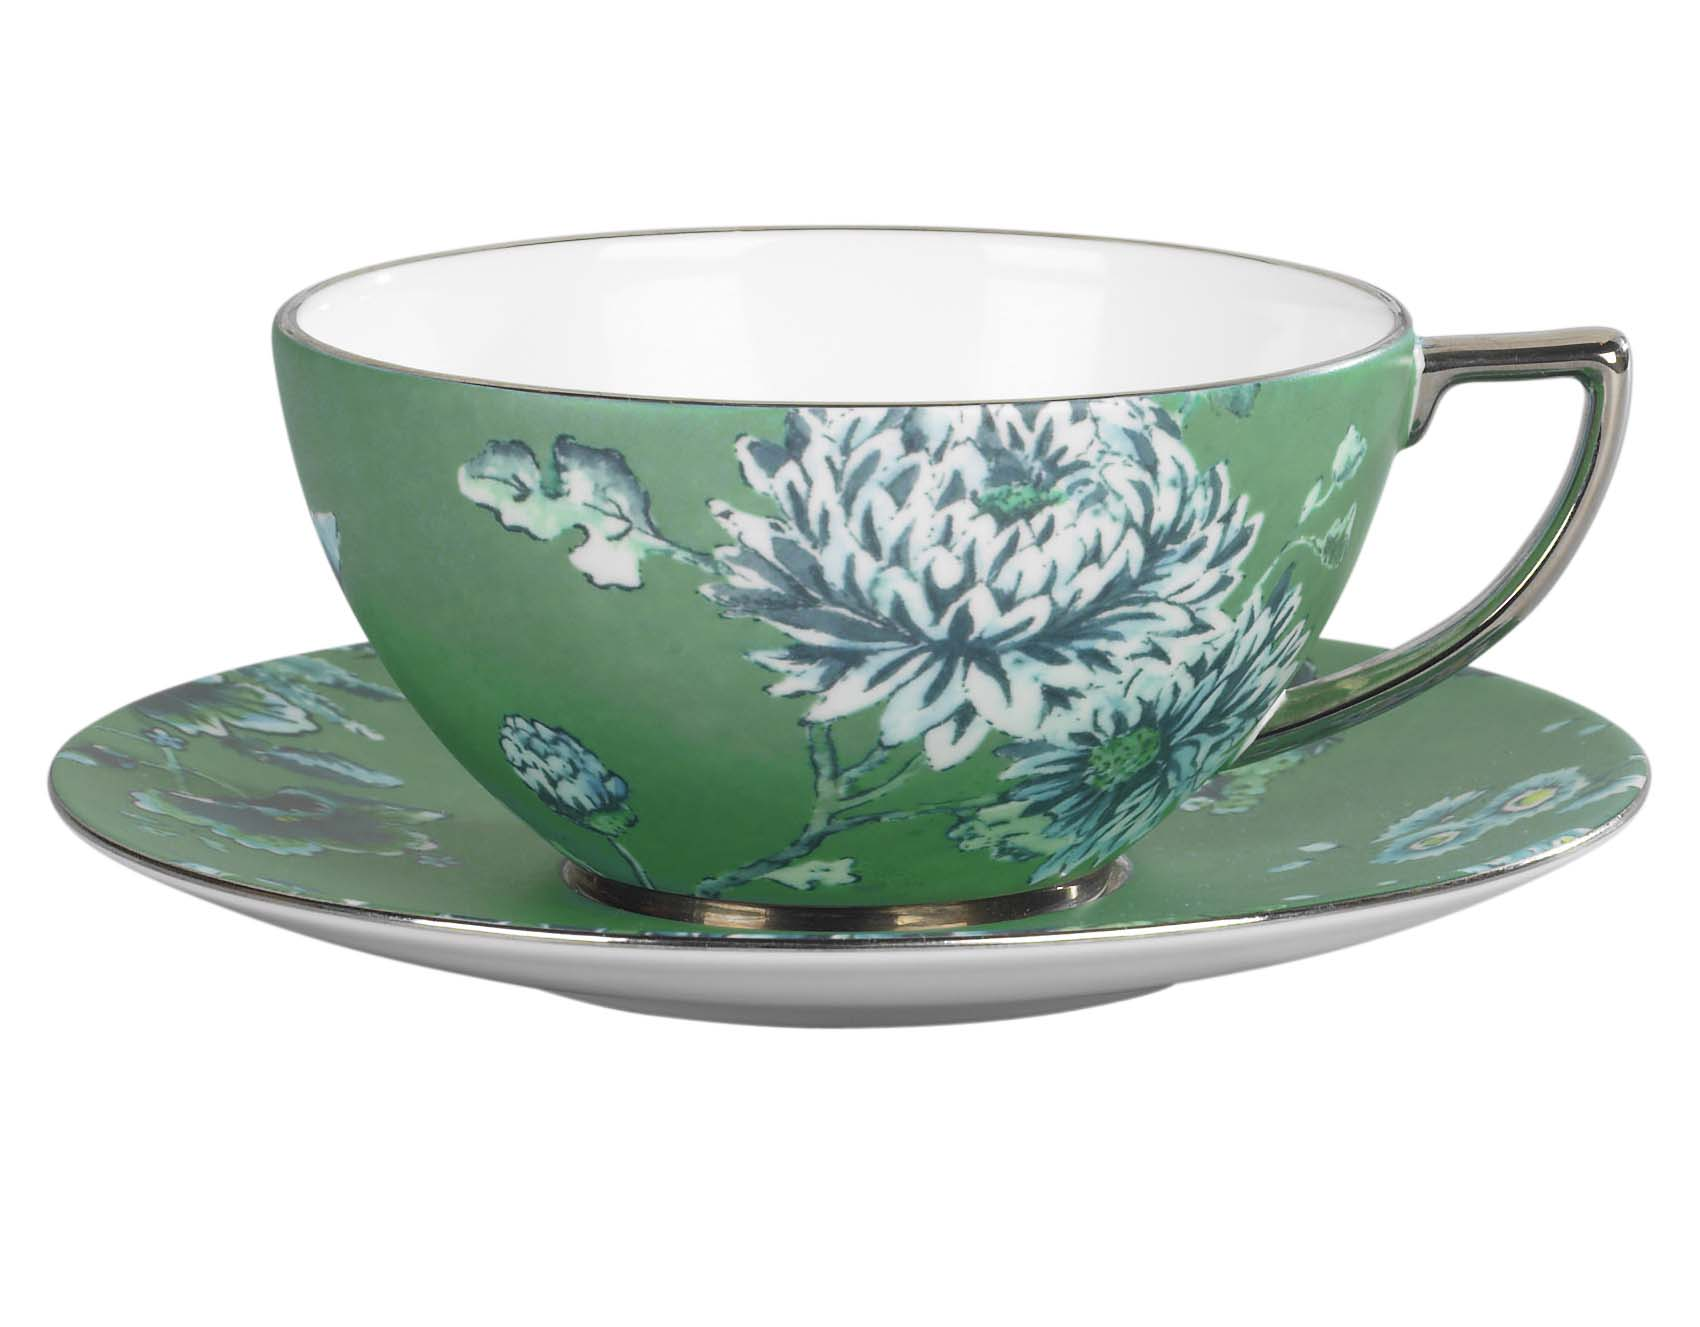 a photo of a green teacup and saucer with dellicate flower pattern